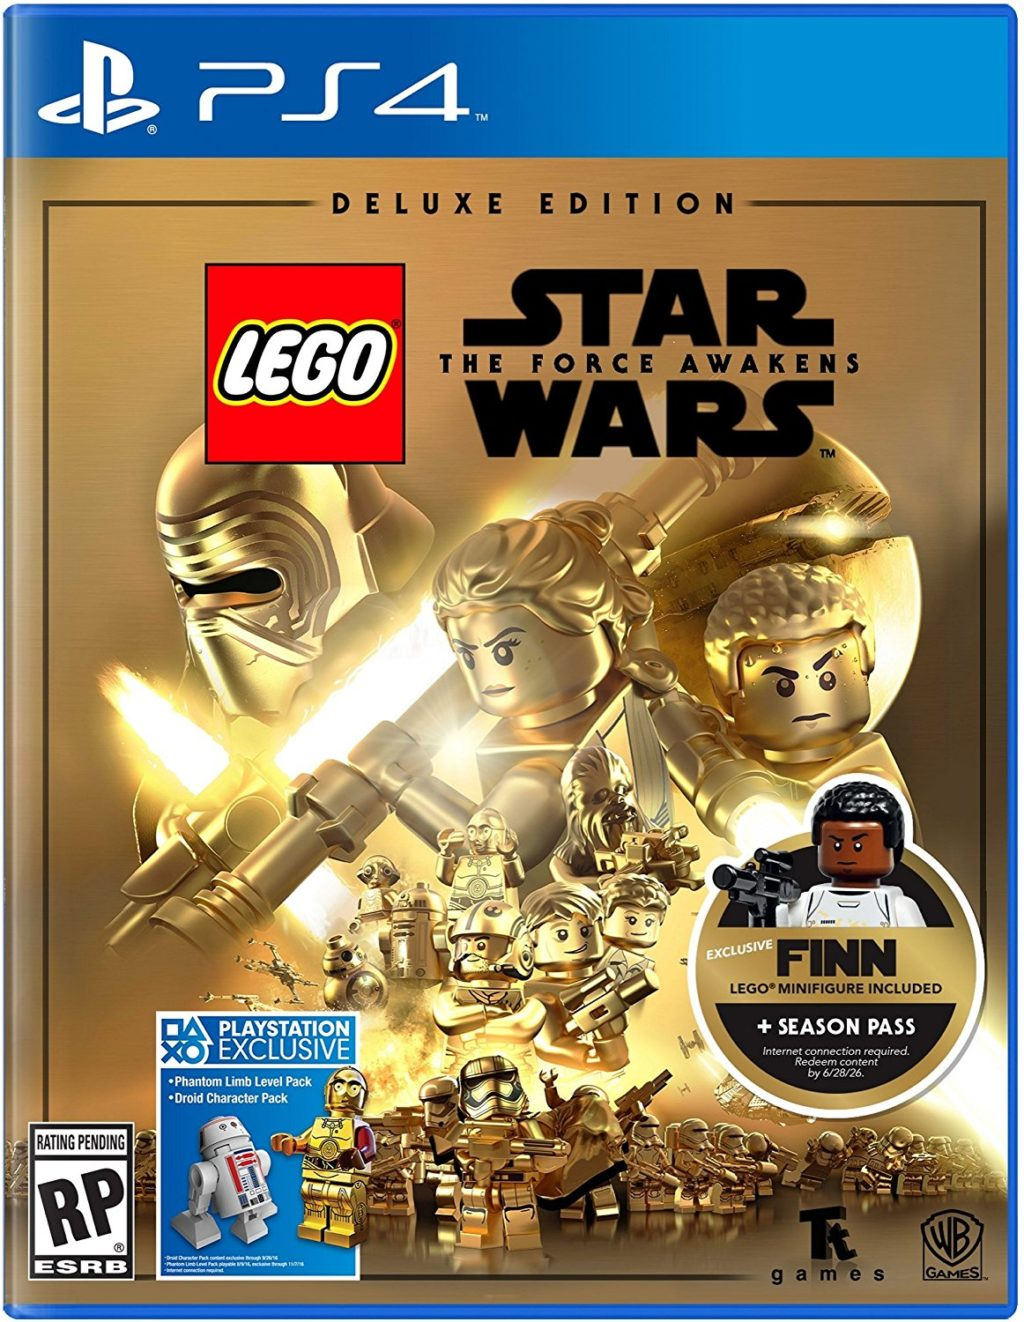 Lego Star Wars Video Games The Force Awakens